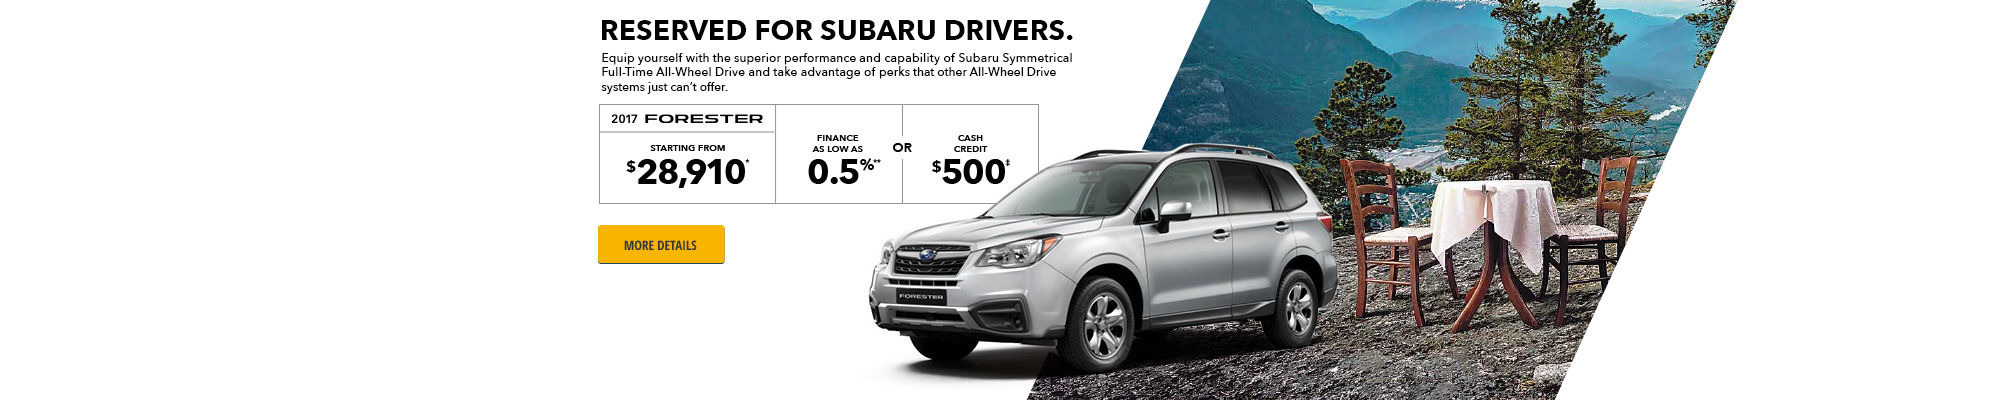 2017 Forester promo